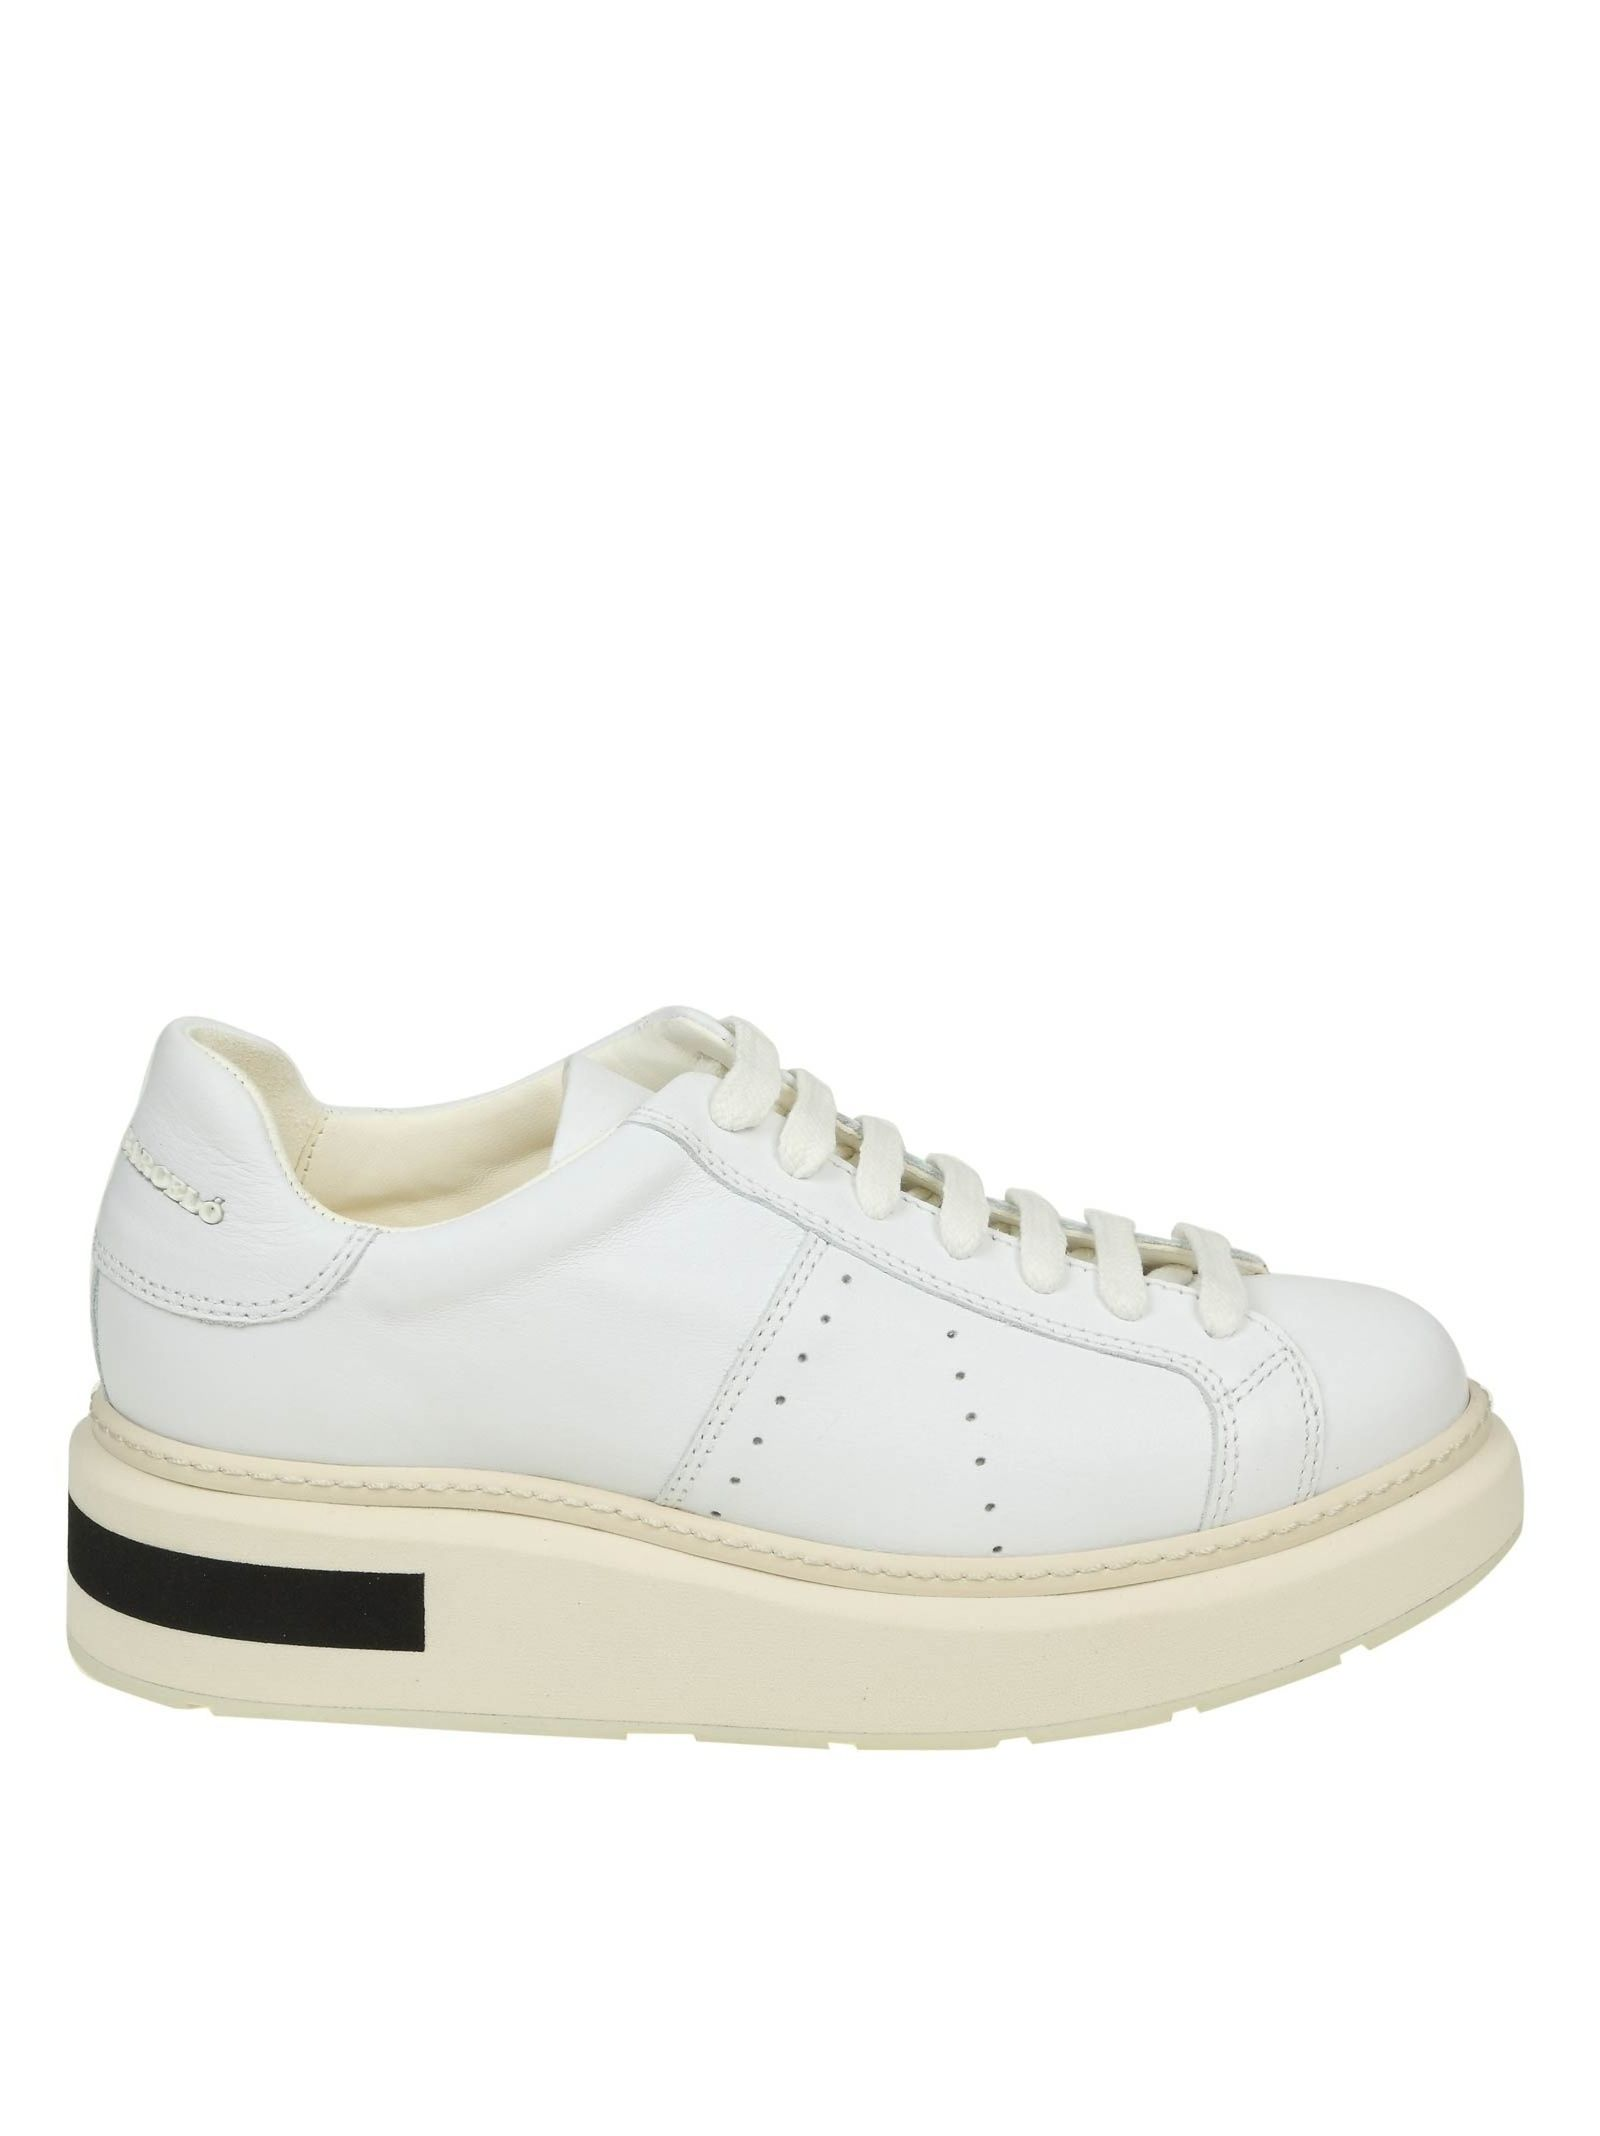 Manuel Barcelo' Sneakers In White Leather